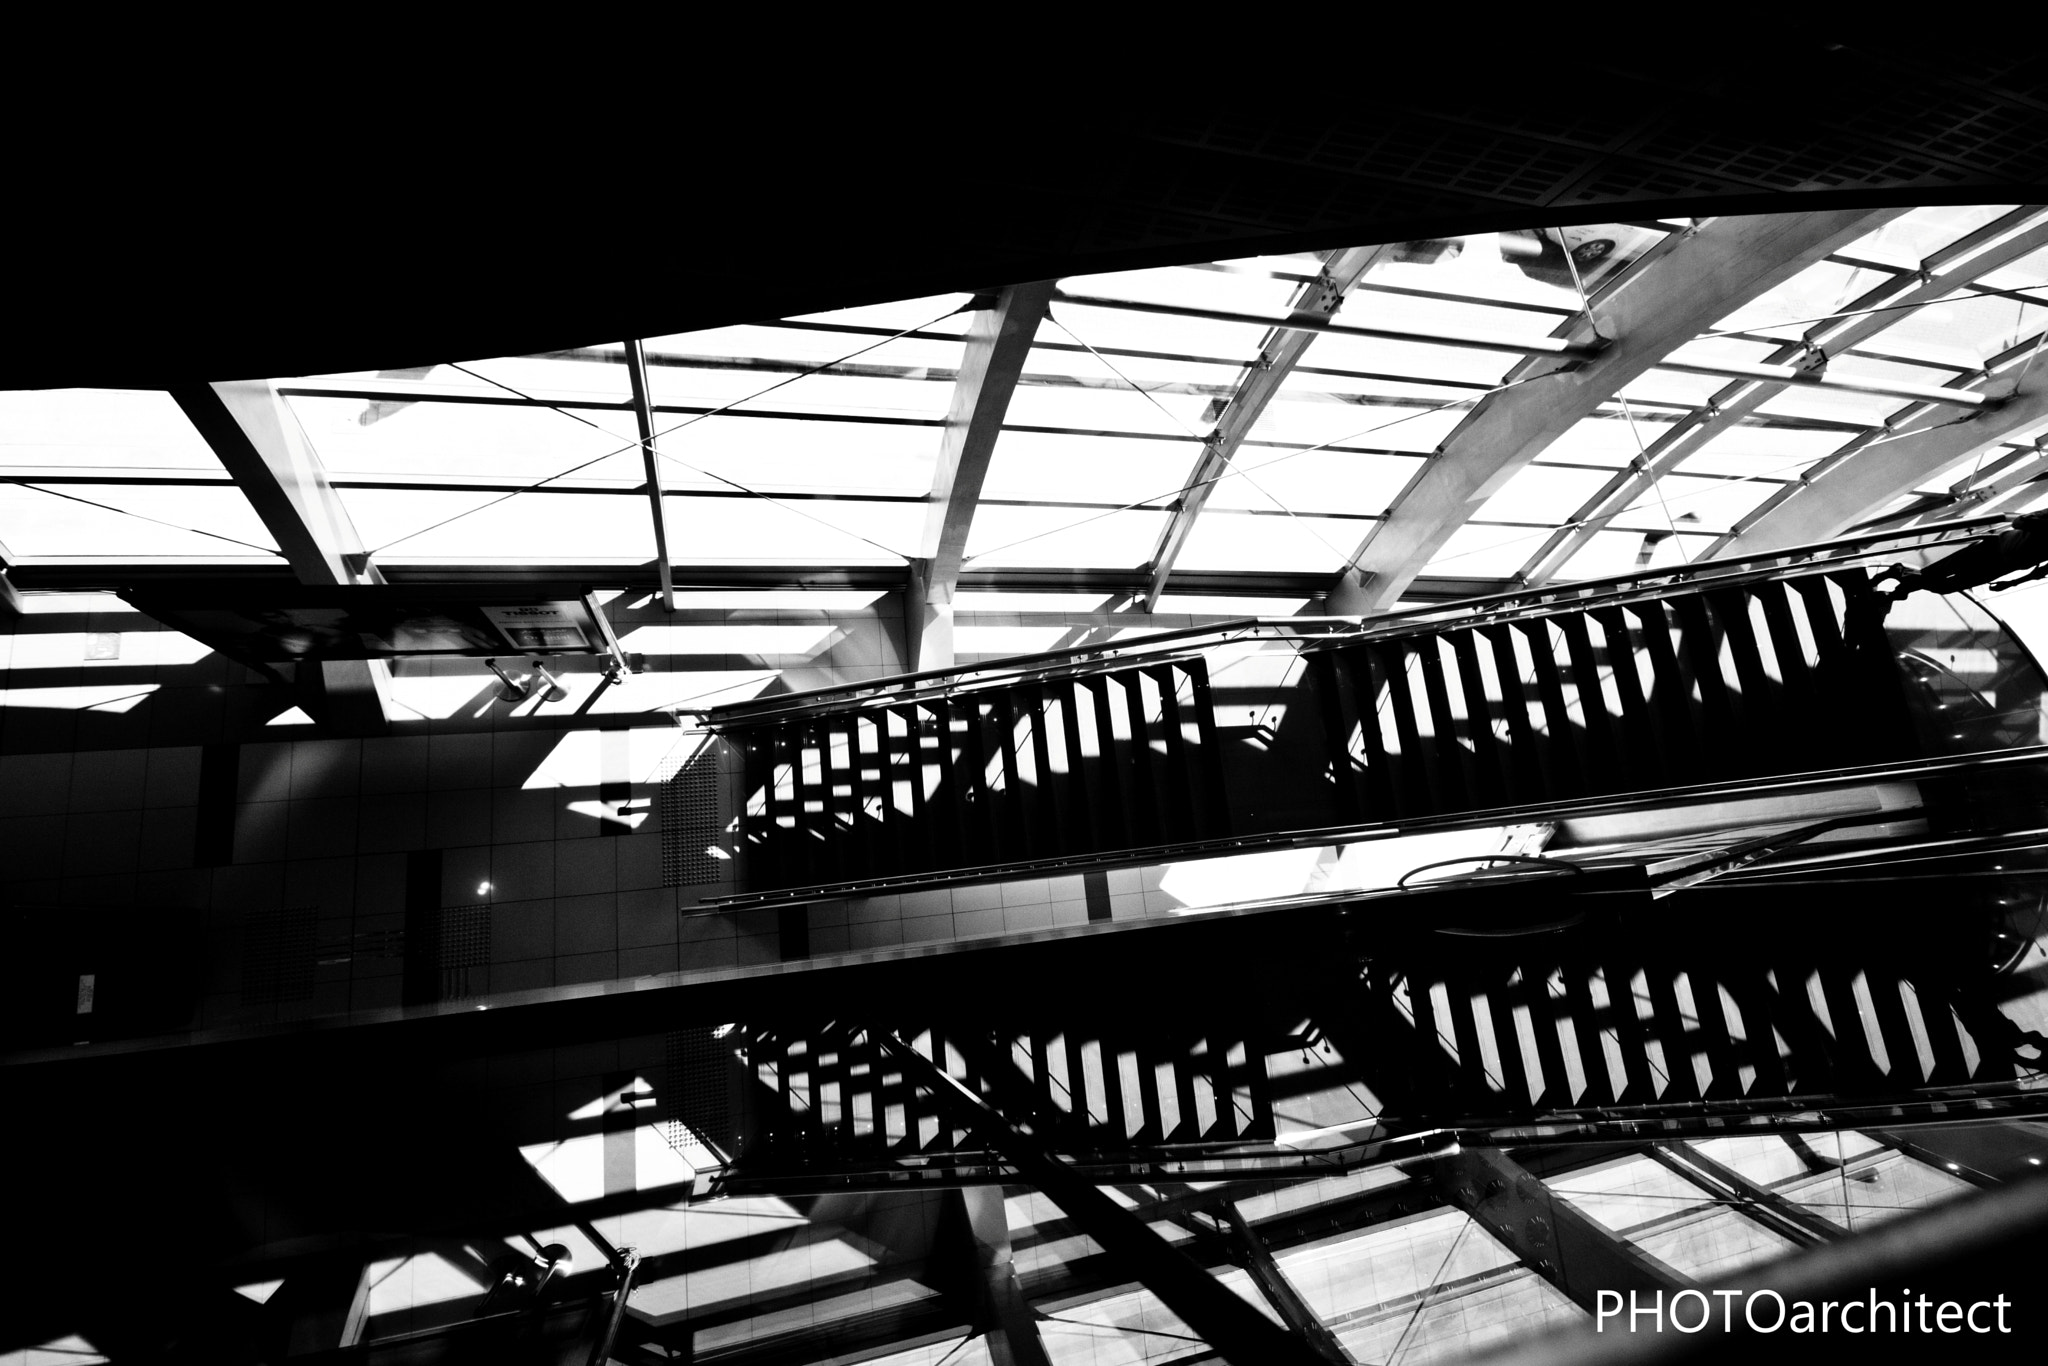 Photograph Stairs and Shadows by Muhammad Alemadi on 500px